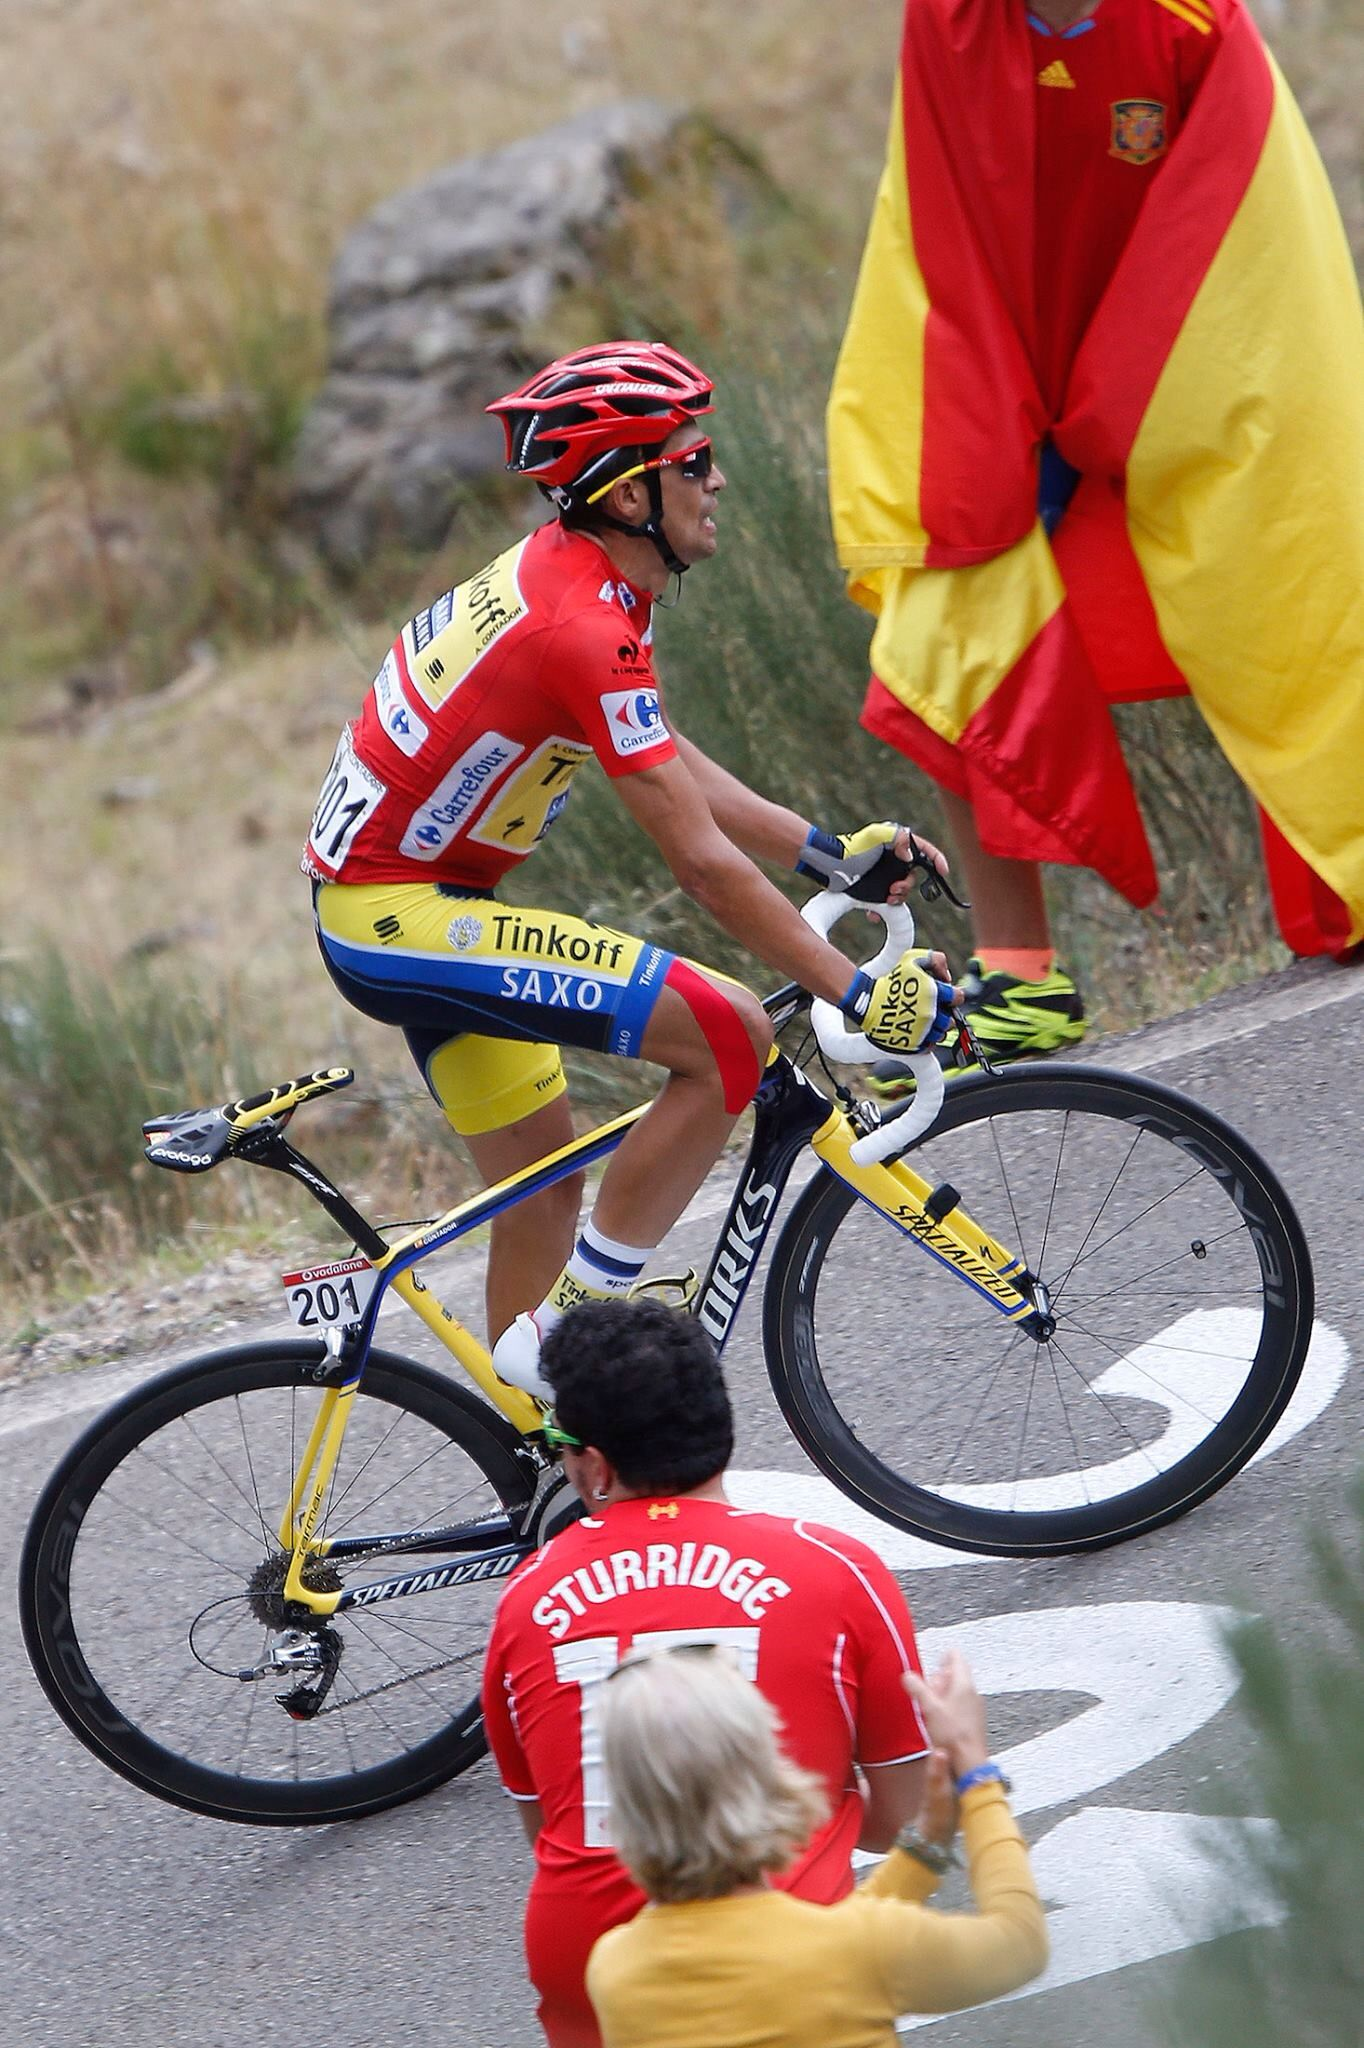 Contador attacking on stage 16 of VaE 2014.....what a stage!